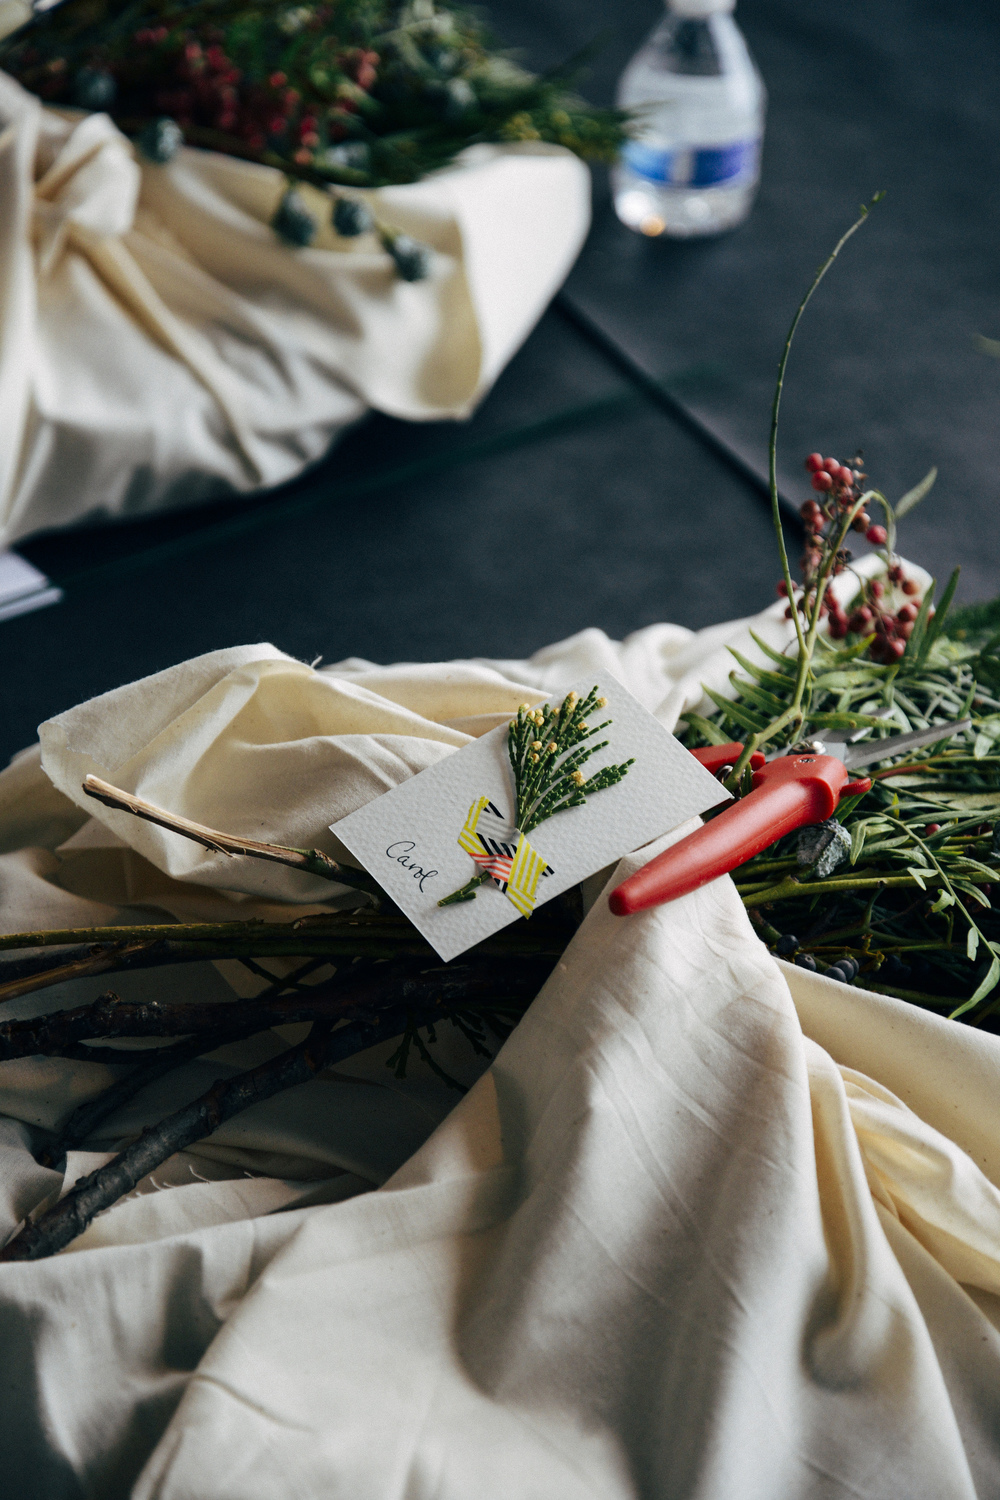 DIY Wreath Workshop - The Midwestival